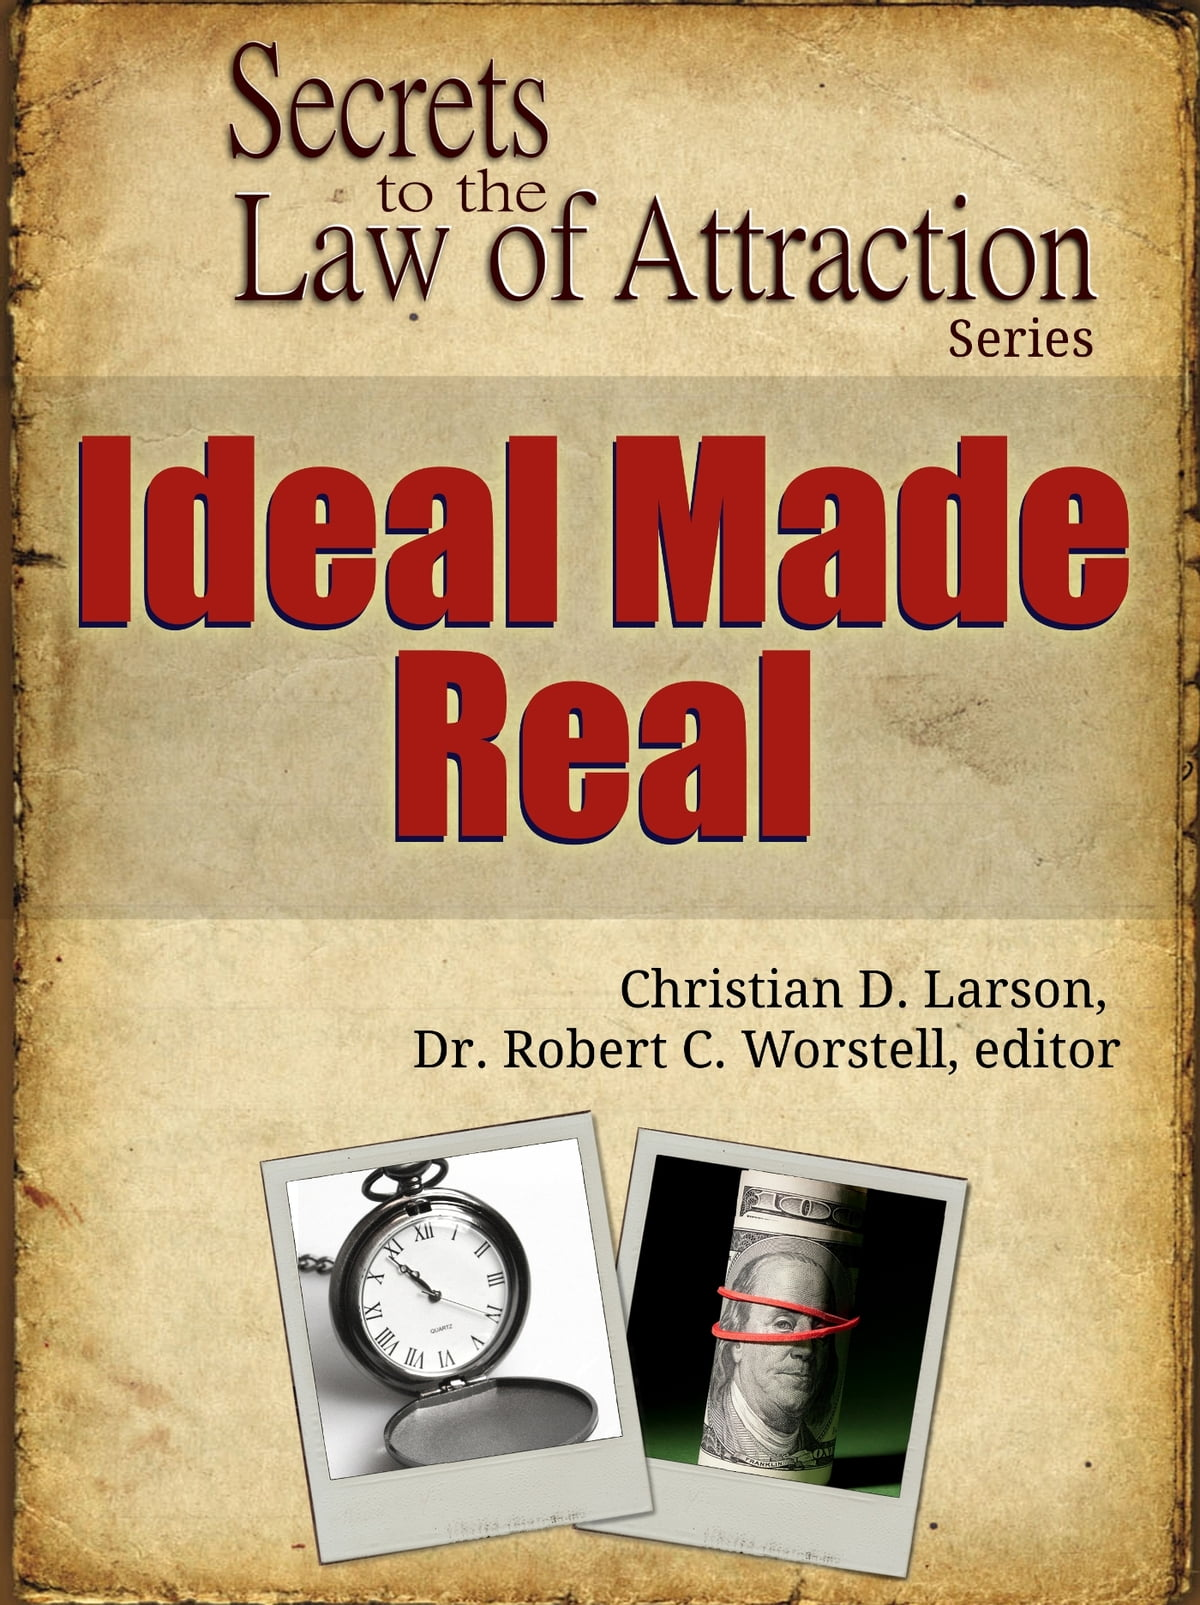 Secrets to the Law of Attraction: Ideal Made Real eBook by Dr. Robert C.  Worstell - 9781300911104 | Rakuten Kobo